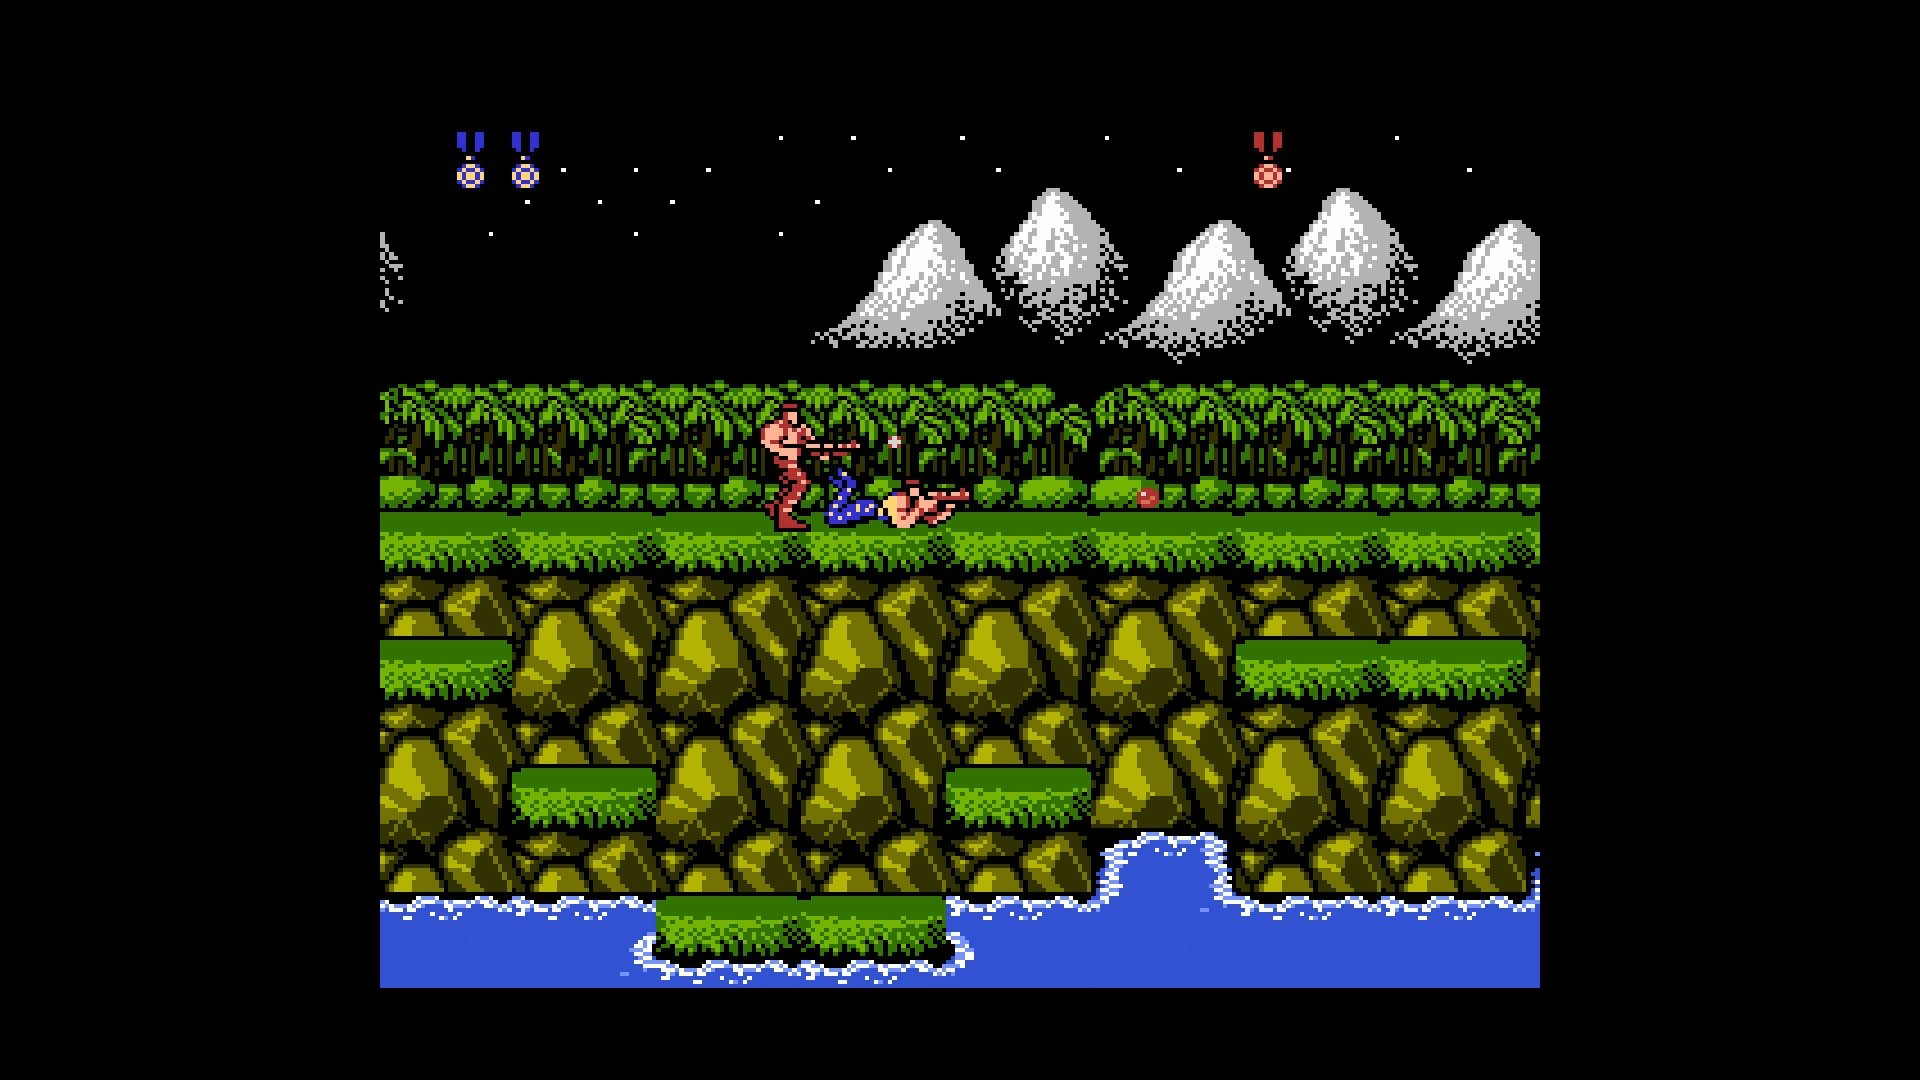 The NES Contra port is one of the most popular couch co-op games of all time.